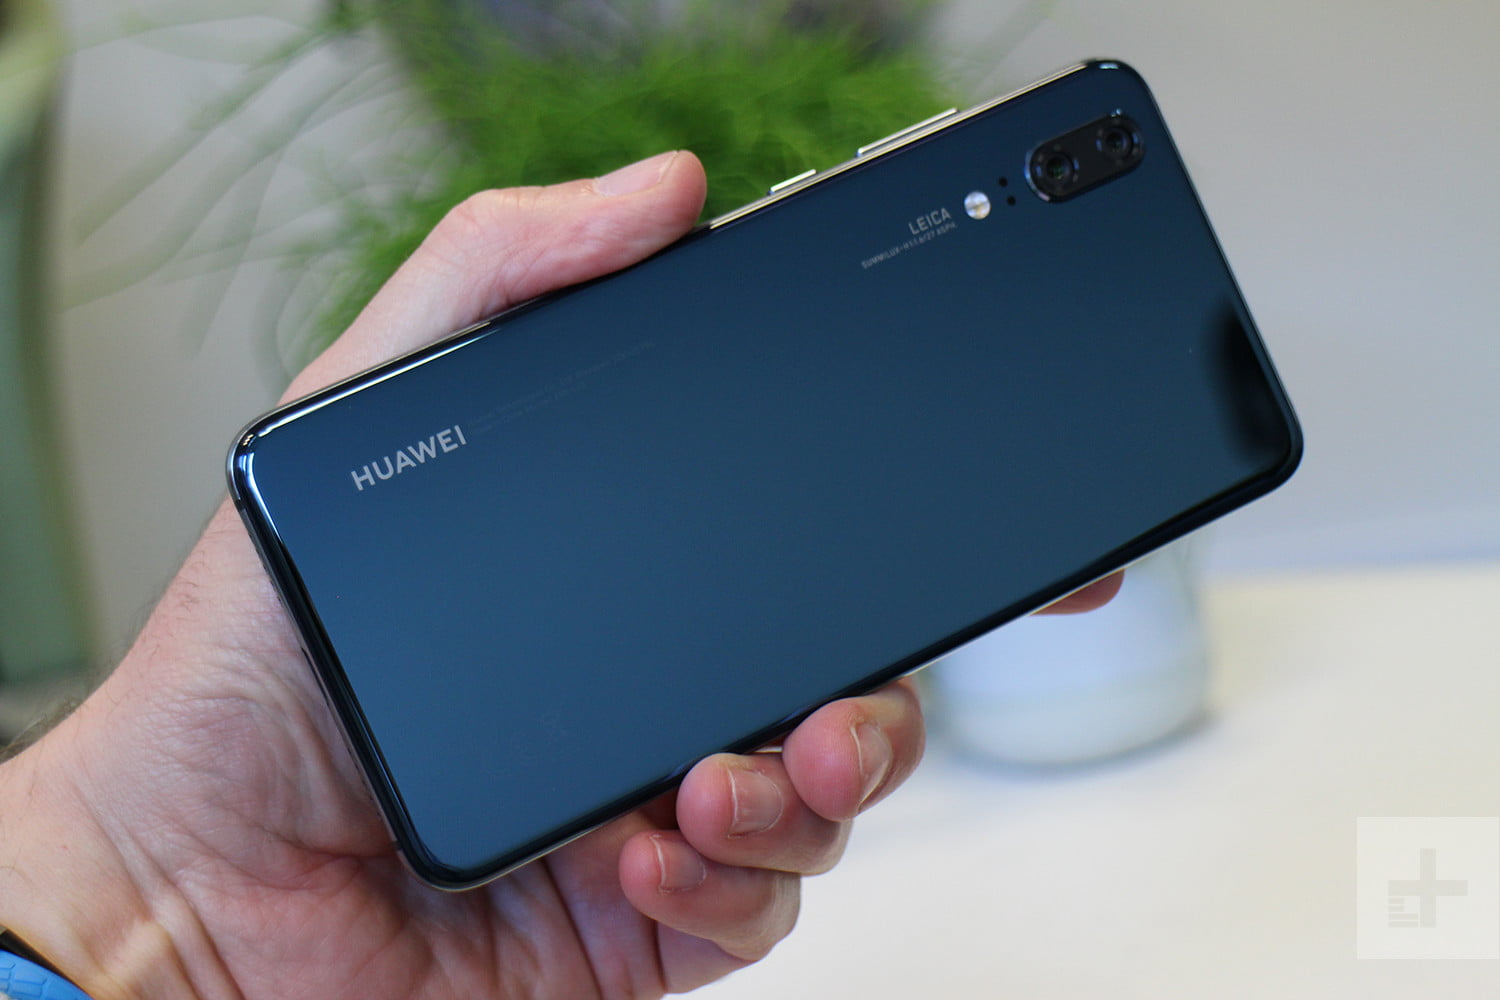 Huawei Smartphone How To Buy The Huawei P20 Or P20 Pro In The U S Digital Trends